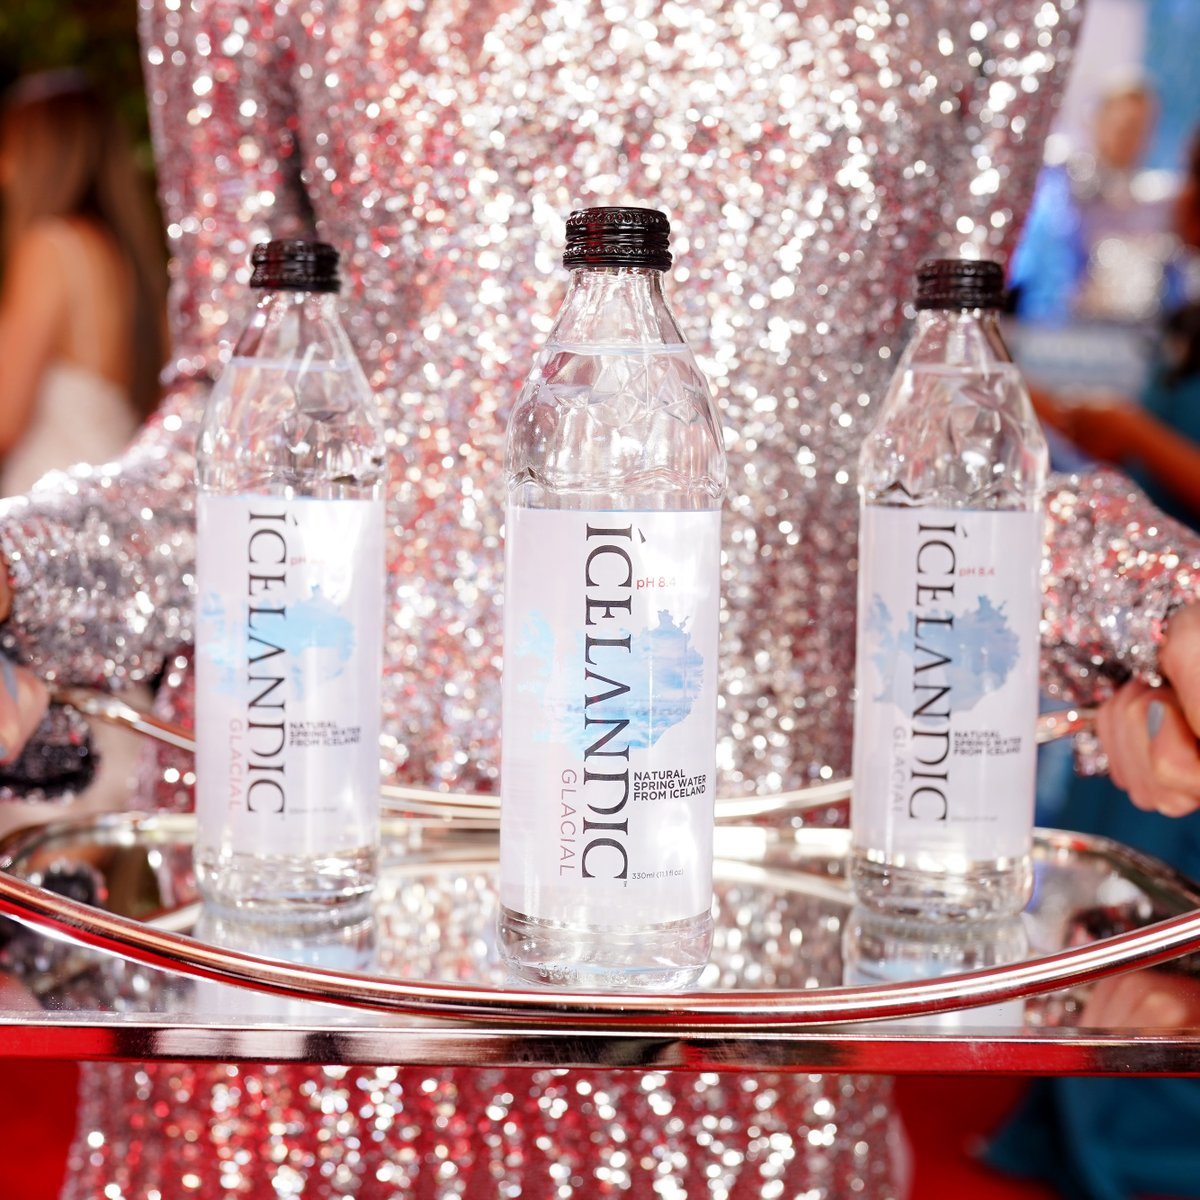 Are you going through your camera roll often lately? It's become a great escape from the #quarantine blues. Can't help but share this great #TBT serving sustainability, sequins, and the purest tasting water on the #GoldenGlobes red carpet. : @presleyannphoto / Getty Imagespic.twitter.com/tnP6nkLCla